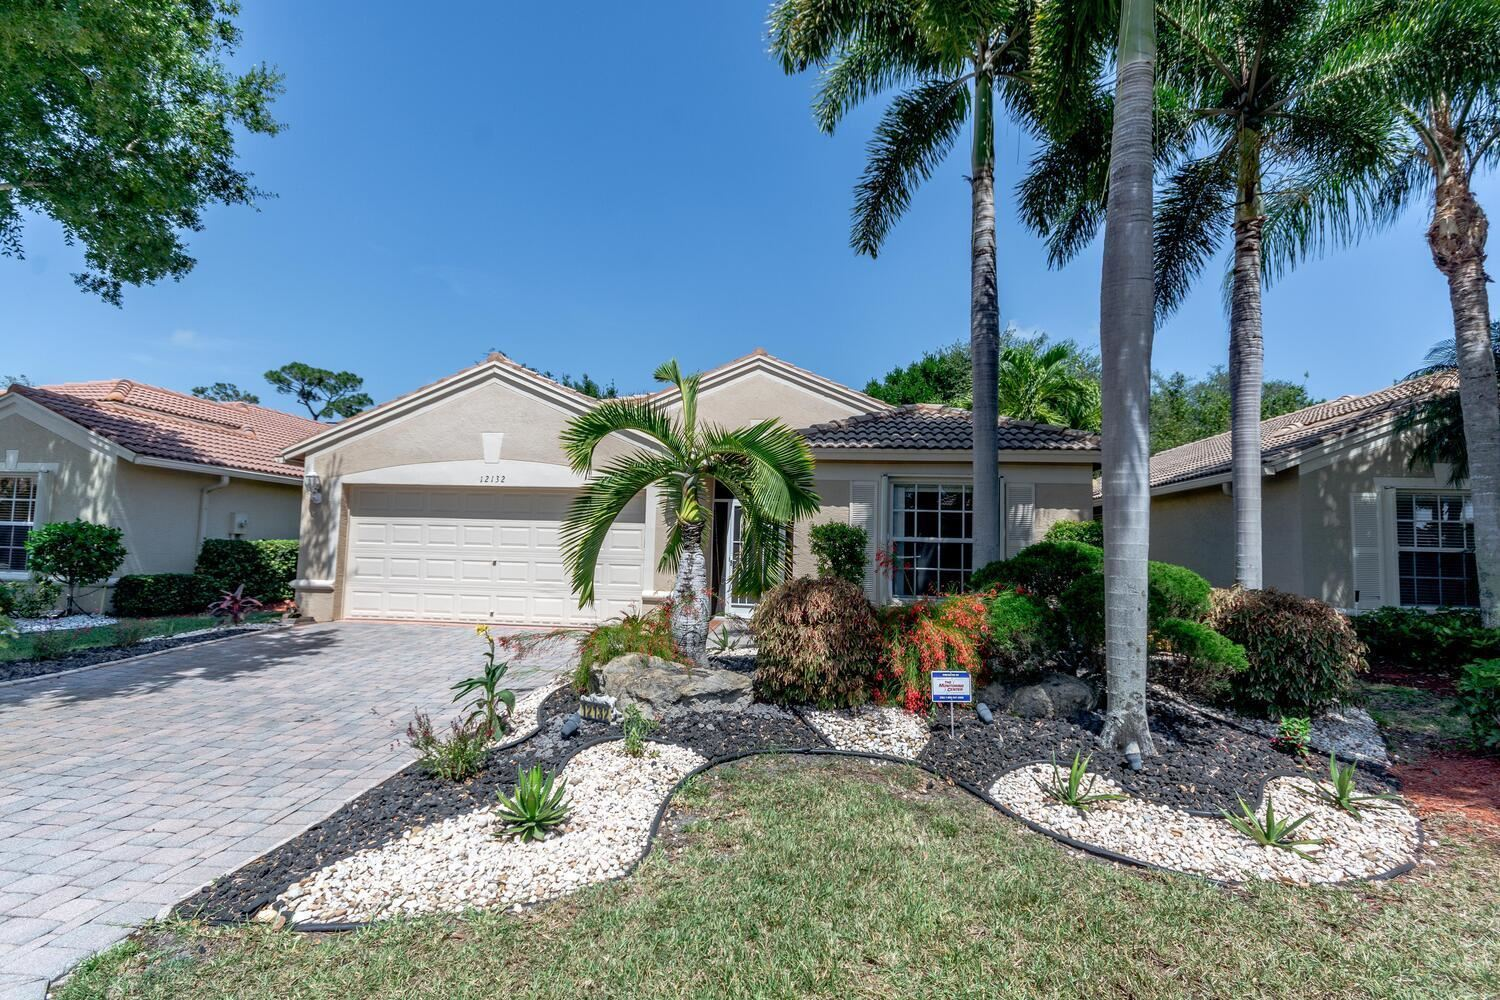 12132 La Vita Way, Boynton Beach, FL 33437 - MLS#: RX-10713683